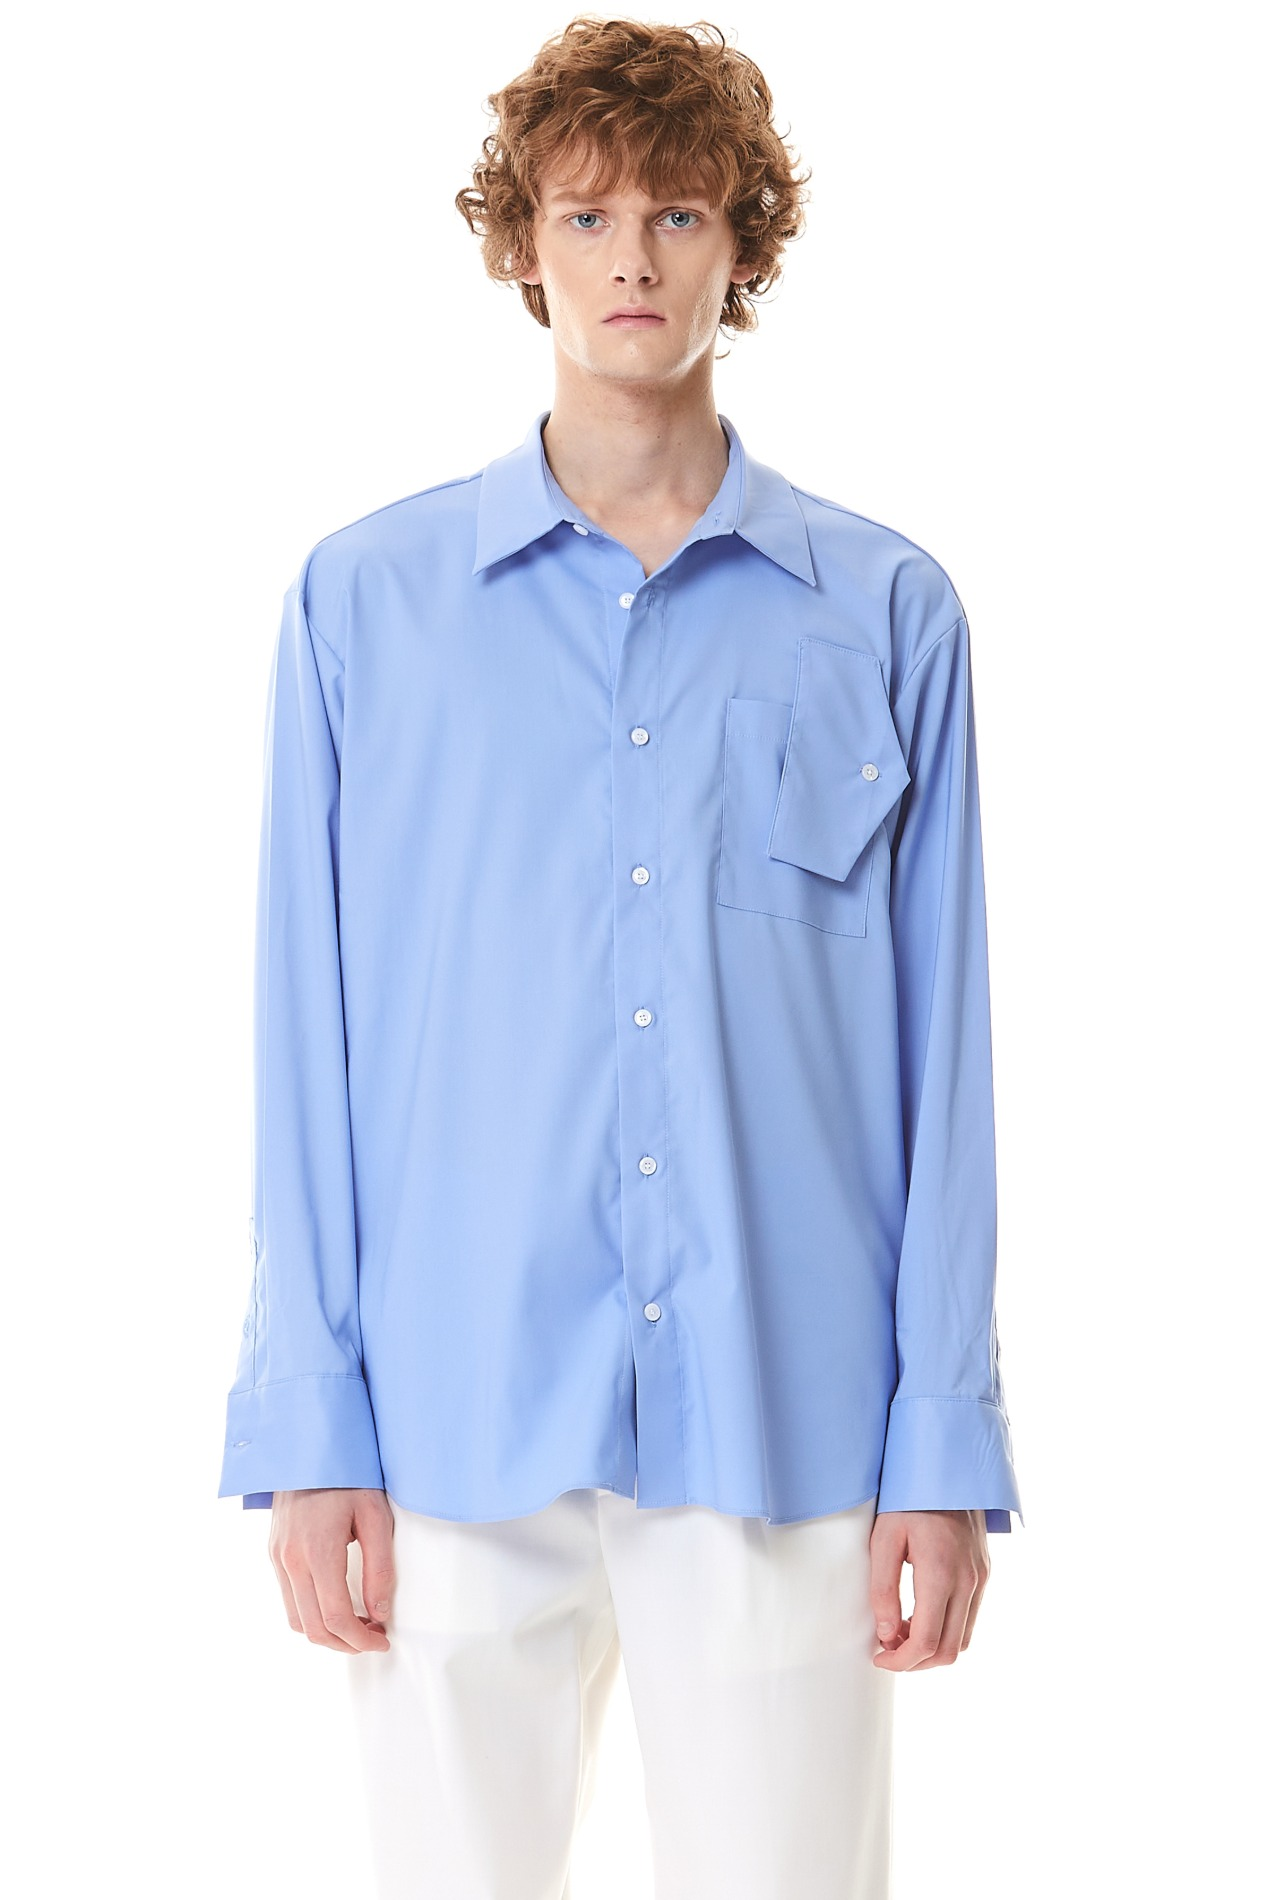 FreakPocket Over Shirt(Blue)